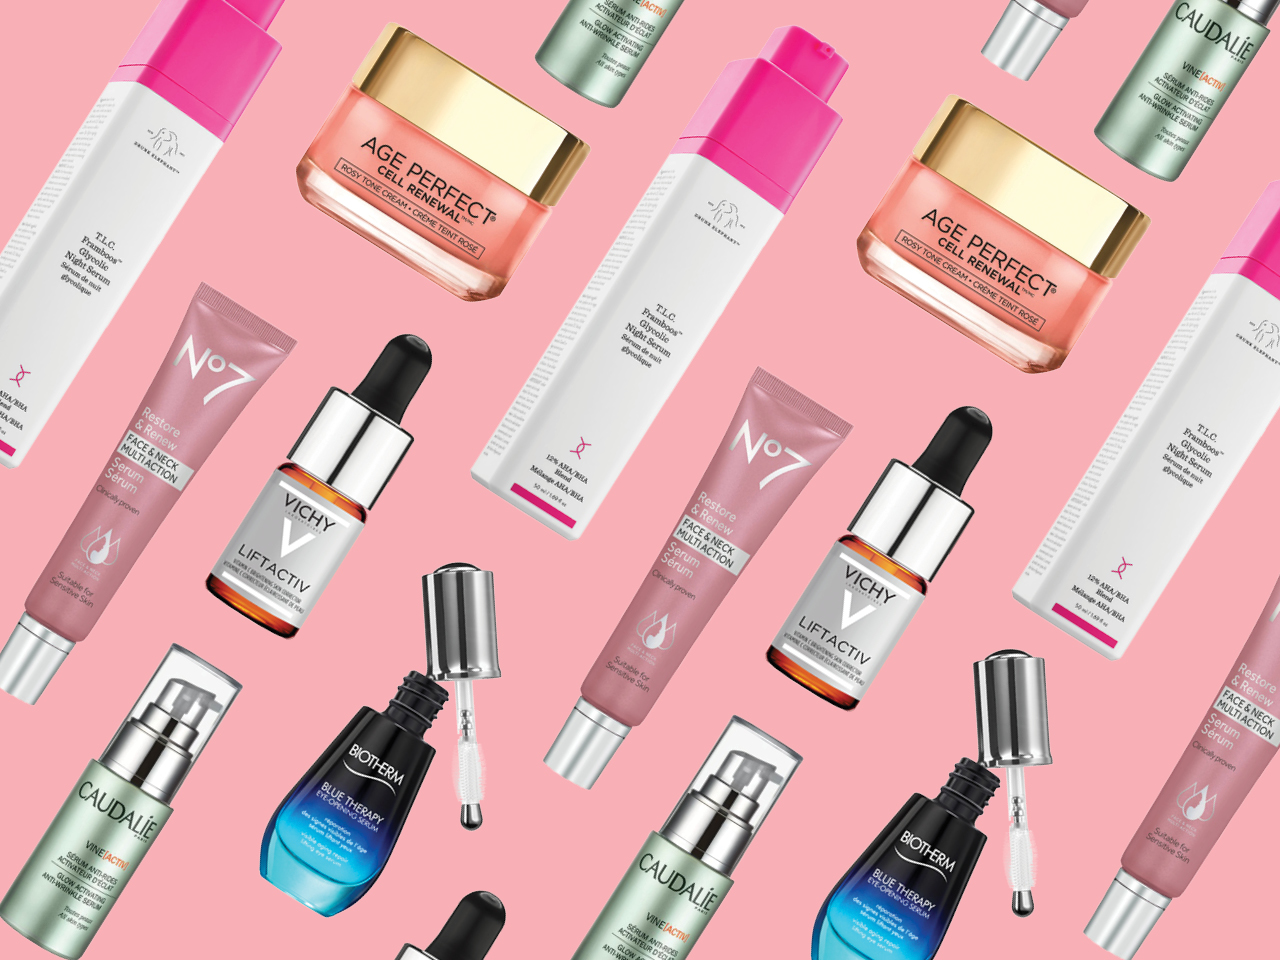 A few of the new anti-aging skincare beauty products